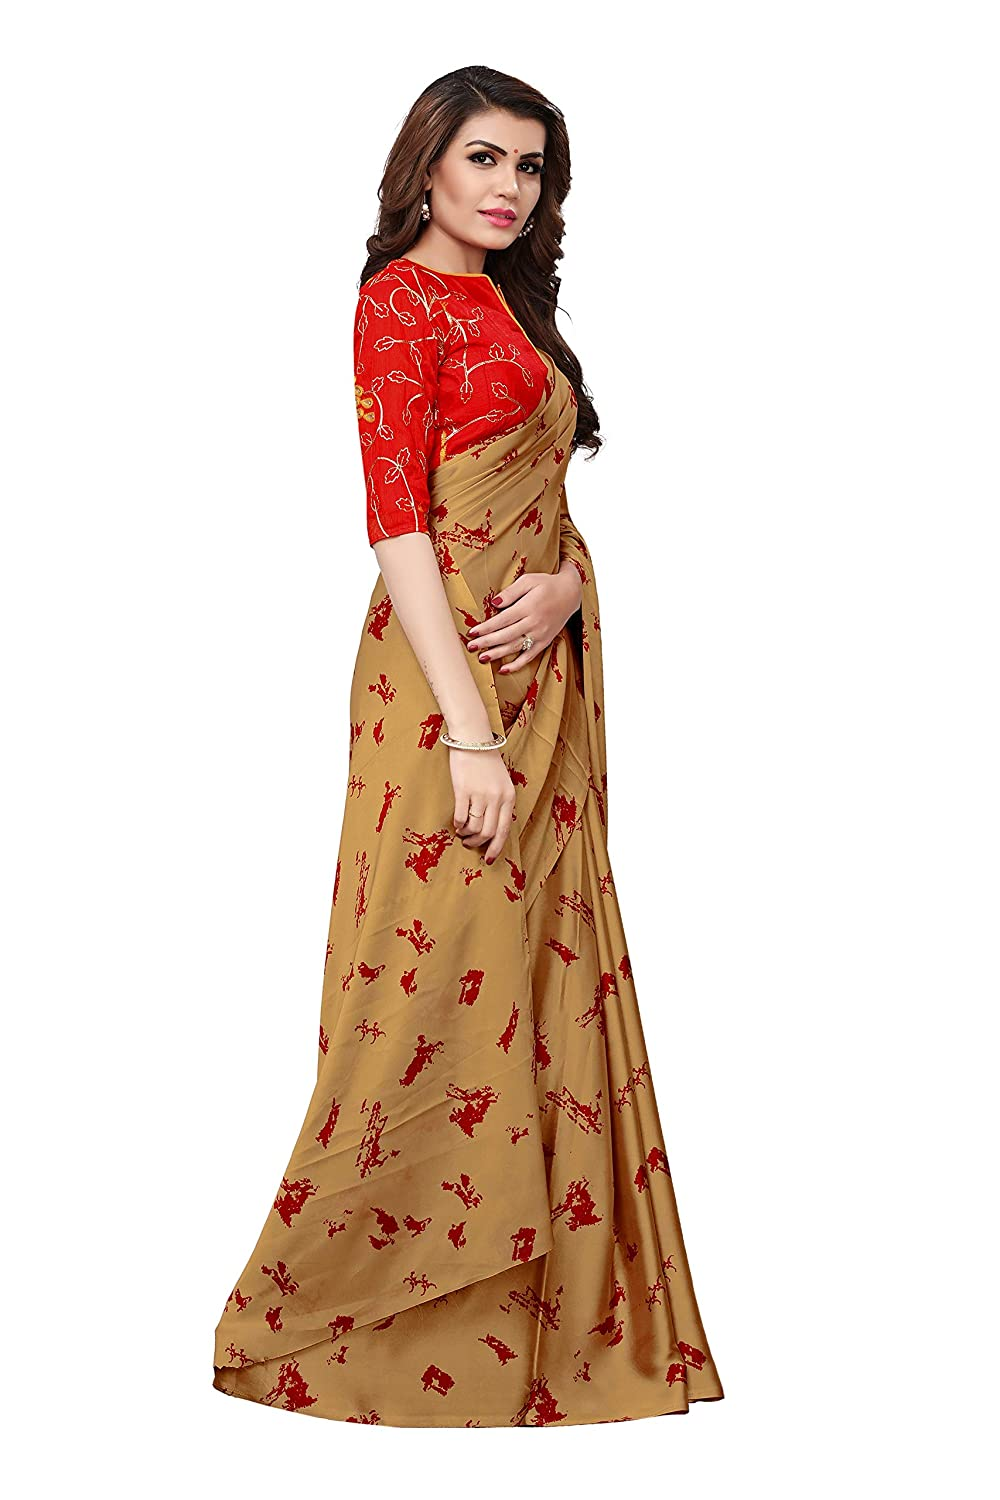 43f96e8d79 Model Madness Beige Georgette Satin Digital Printed Saree with Banglori  silk Embroidered Un-Stitched Blouse: Amazon.in: Clothing & Accessories